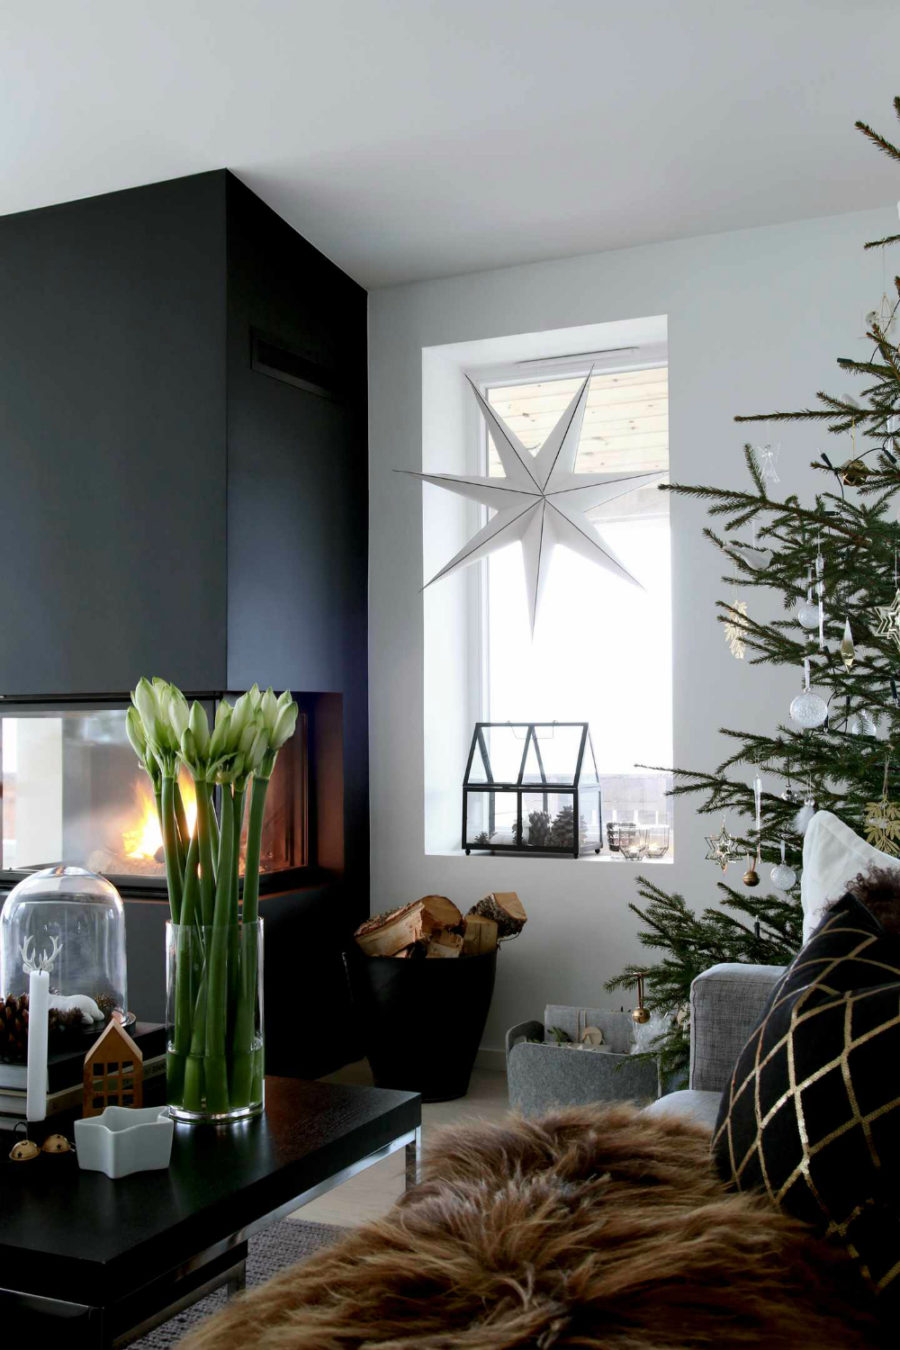 Stylish contemporary holiday decor